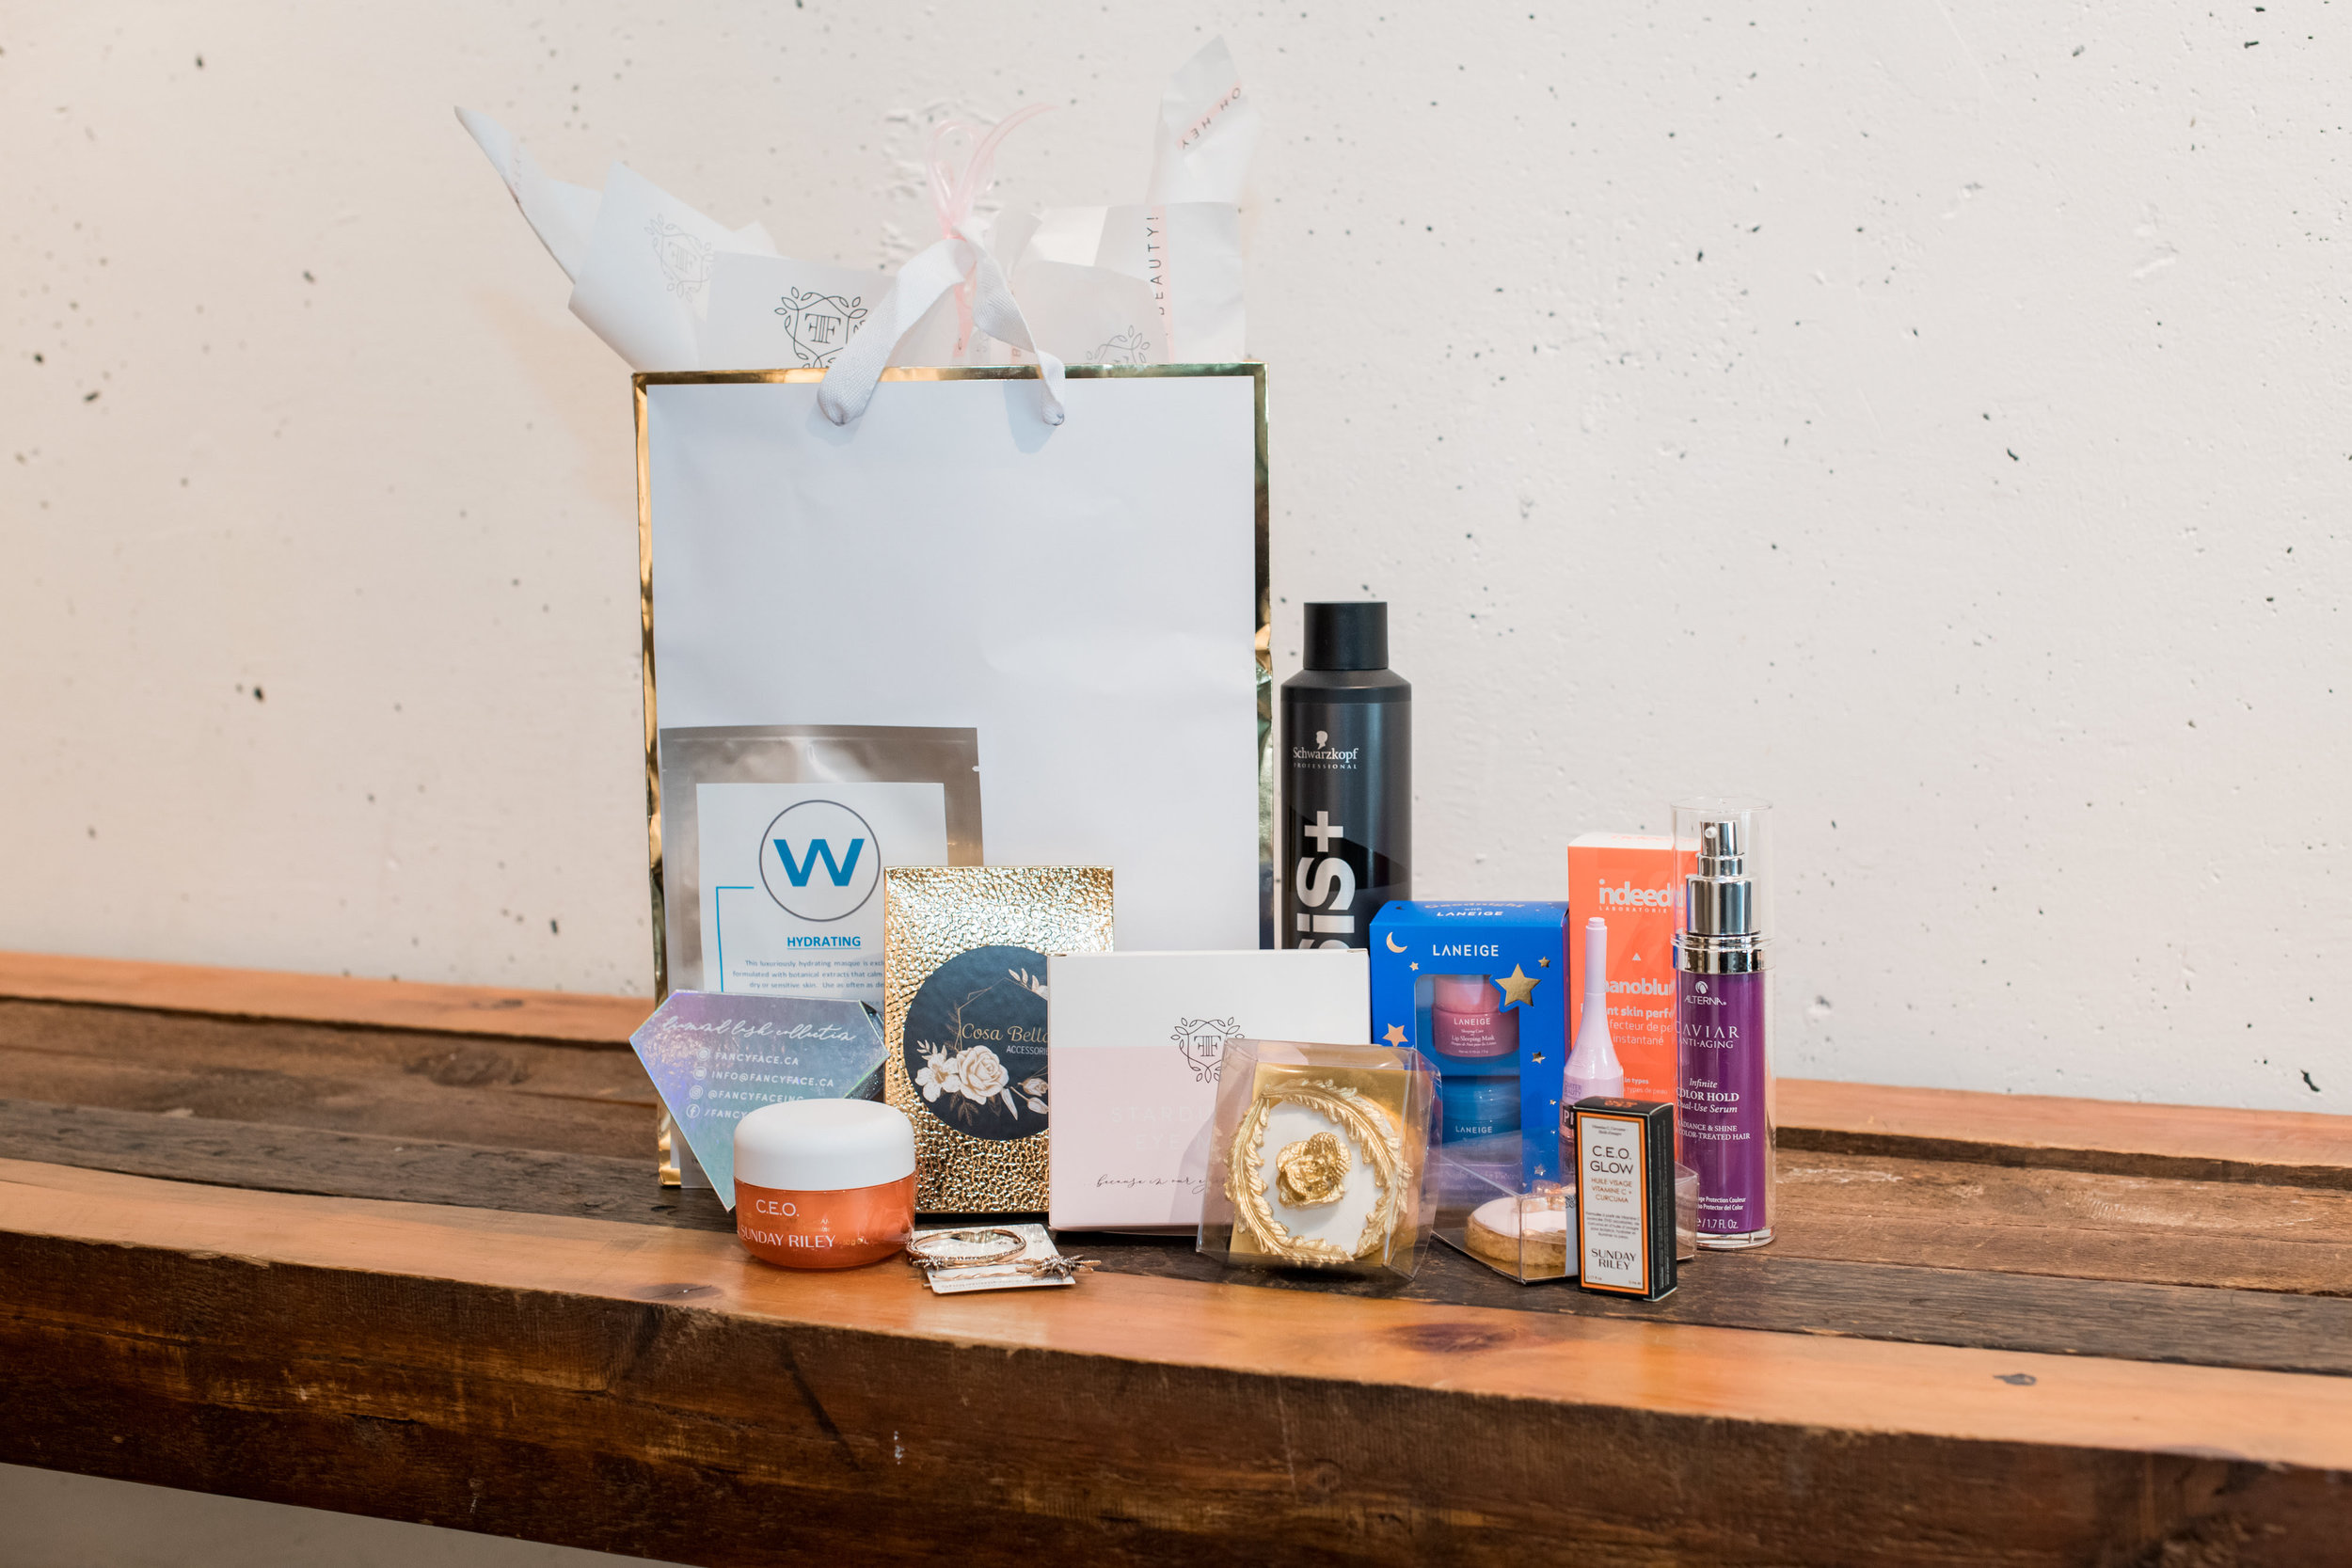 Some of the products from the Masterclass Gift Bags